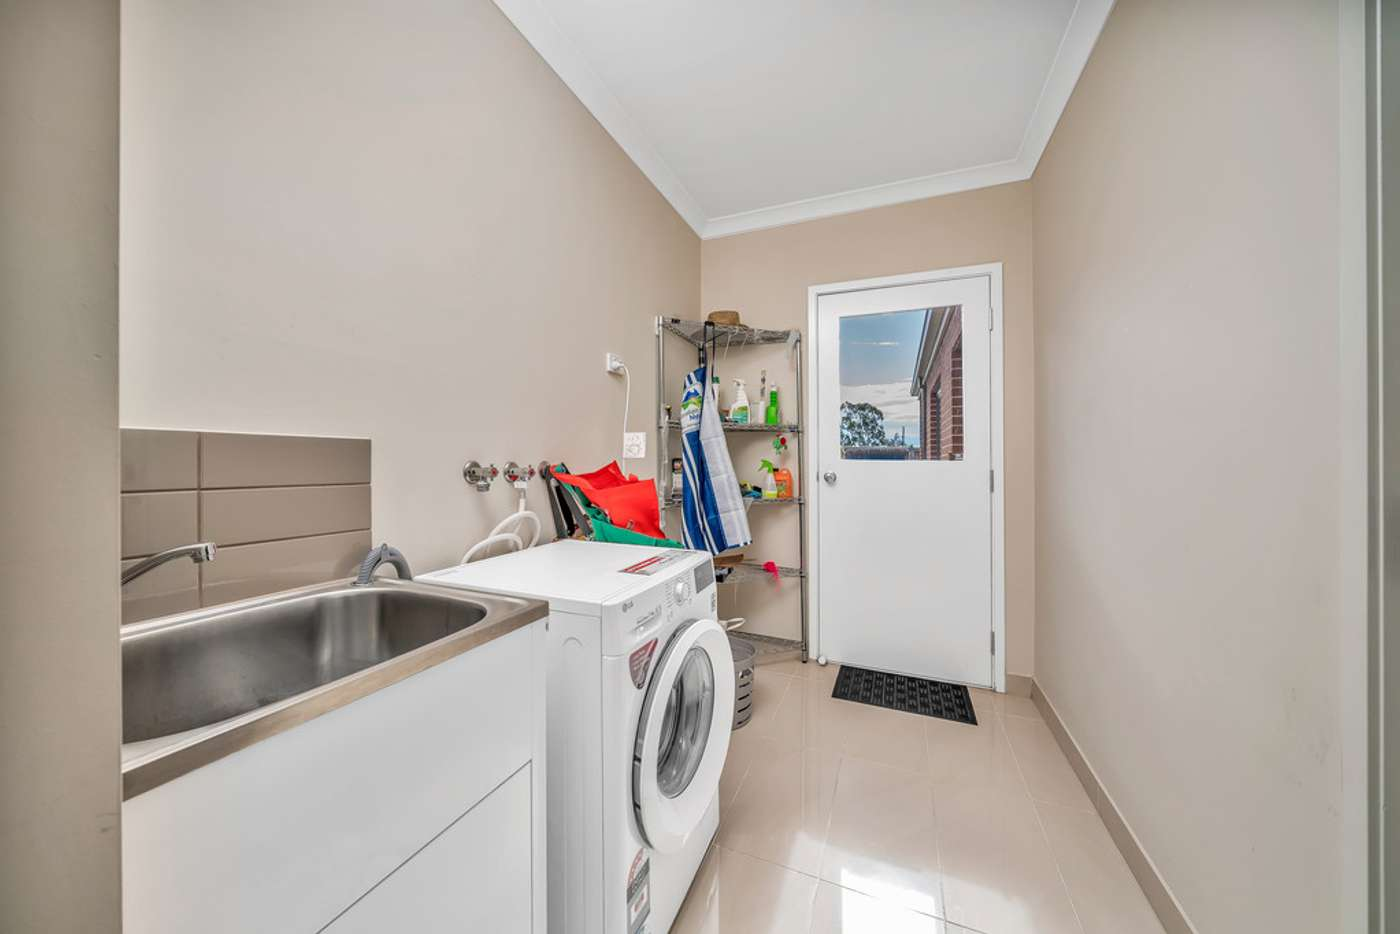 Seventh view of Homely house listing, 8 Mahal Dr, Clyde North VIC 3978